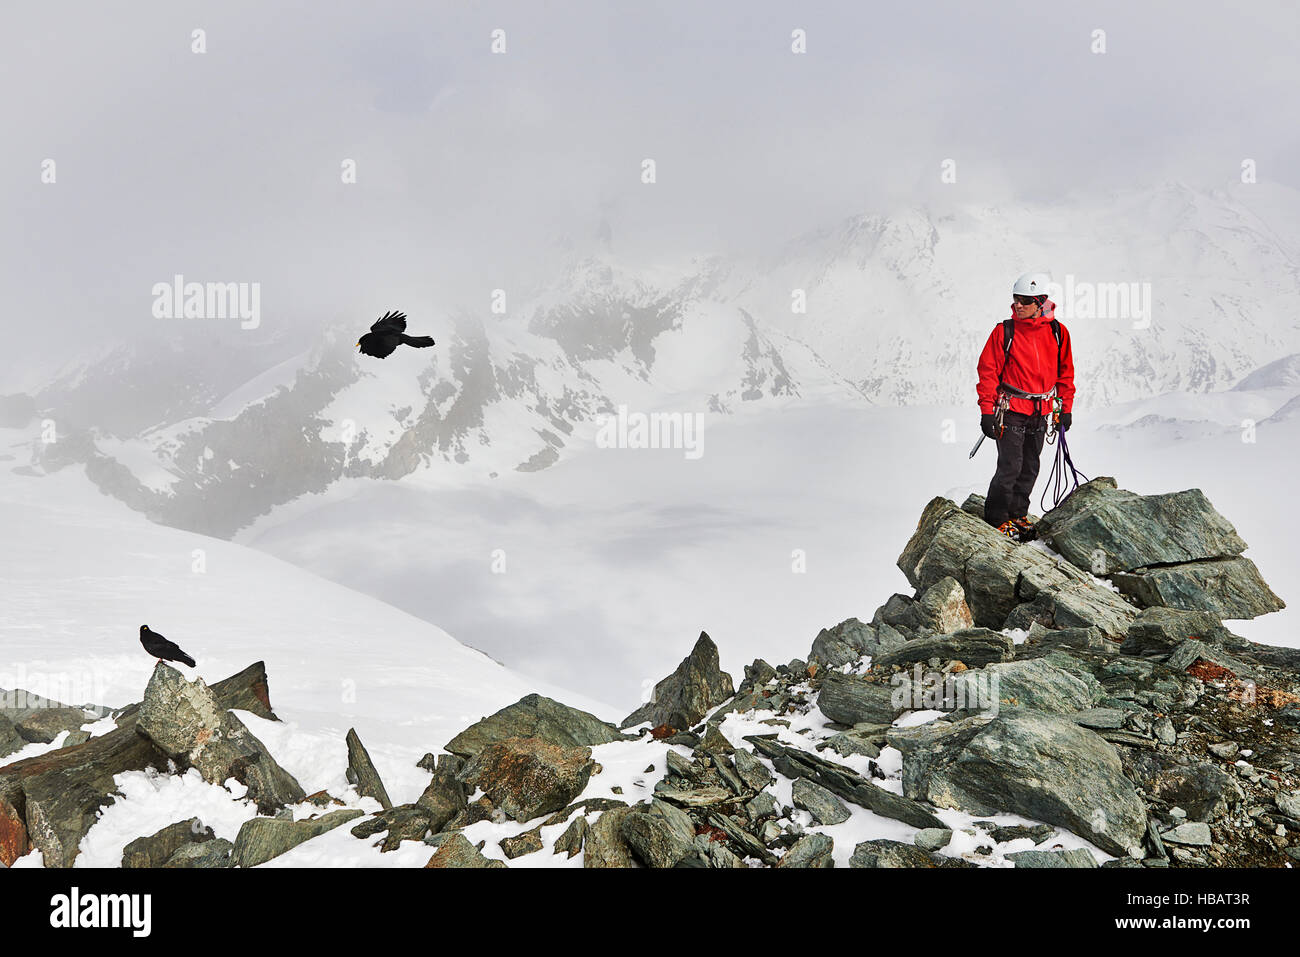 Man on top of snow covered mountain looking at bird in flight, Saas Fee, Switzerland - Stock Image